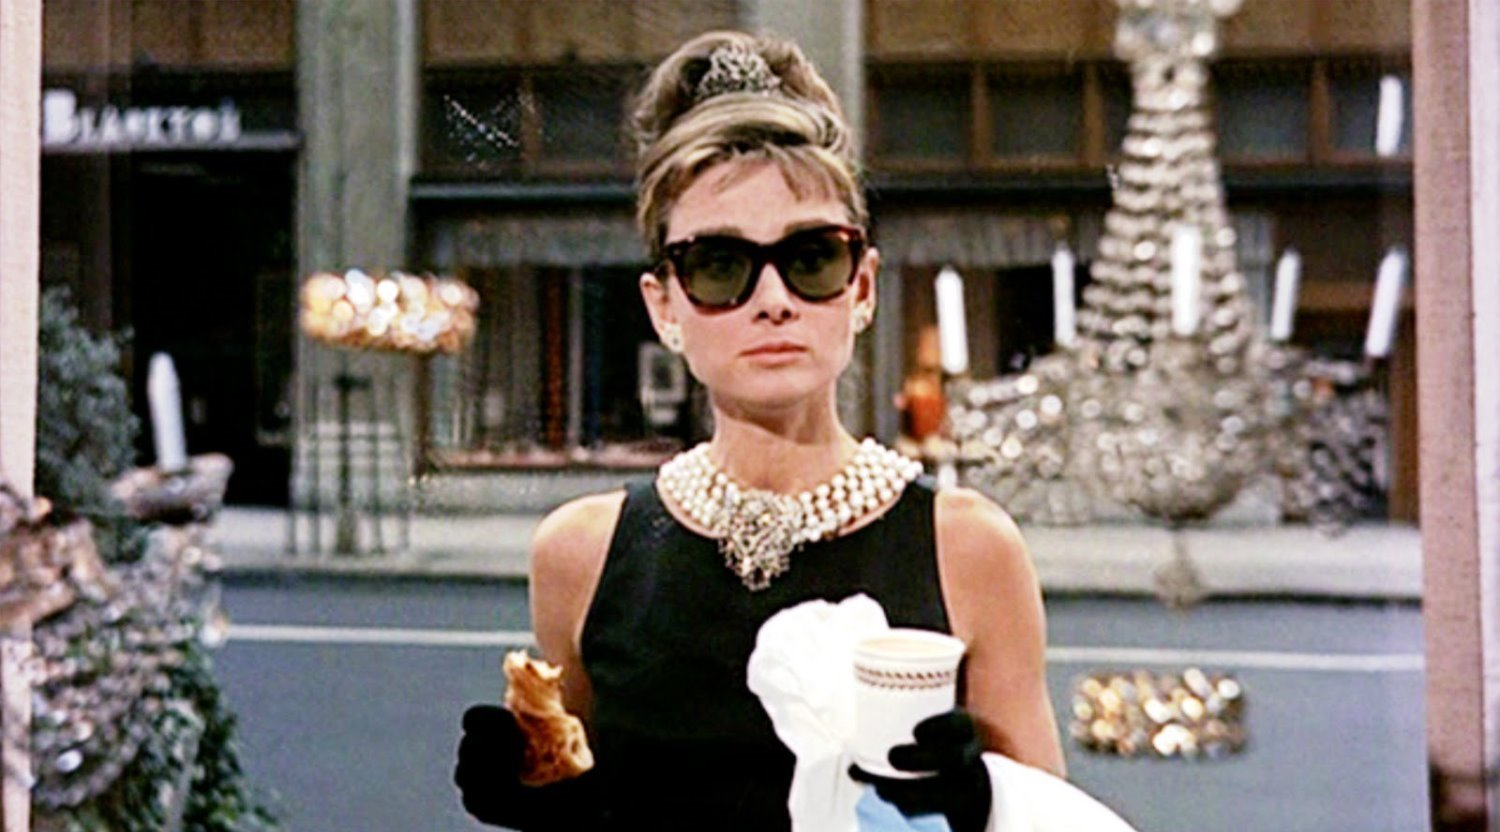 Breakfast-At-Tiffany's-Is-A-Real-Cafe-Now-haute-living-tita-carra_edited_edited